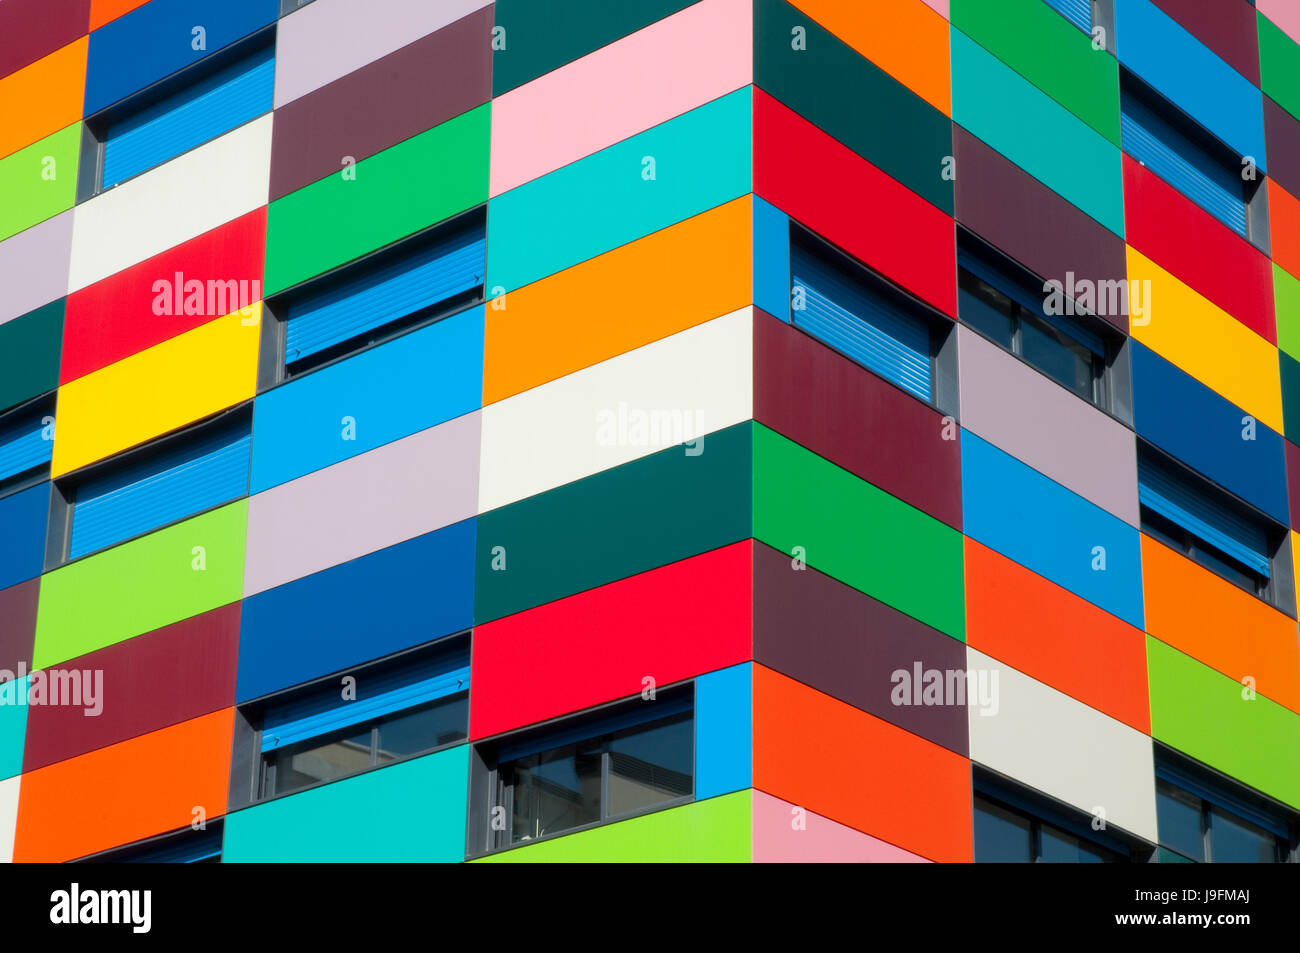 Facade of Colorines building. PAU carabanchel, madrid, Spain. - Stock Image